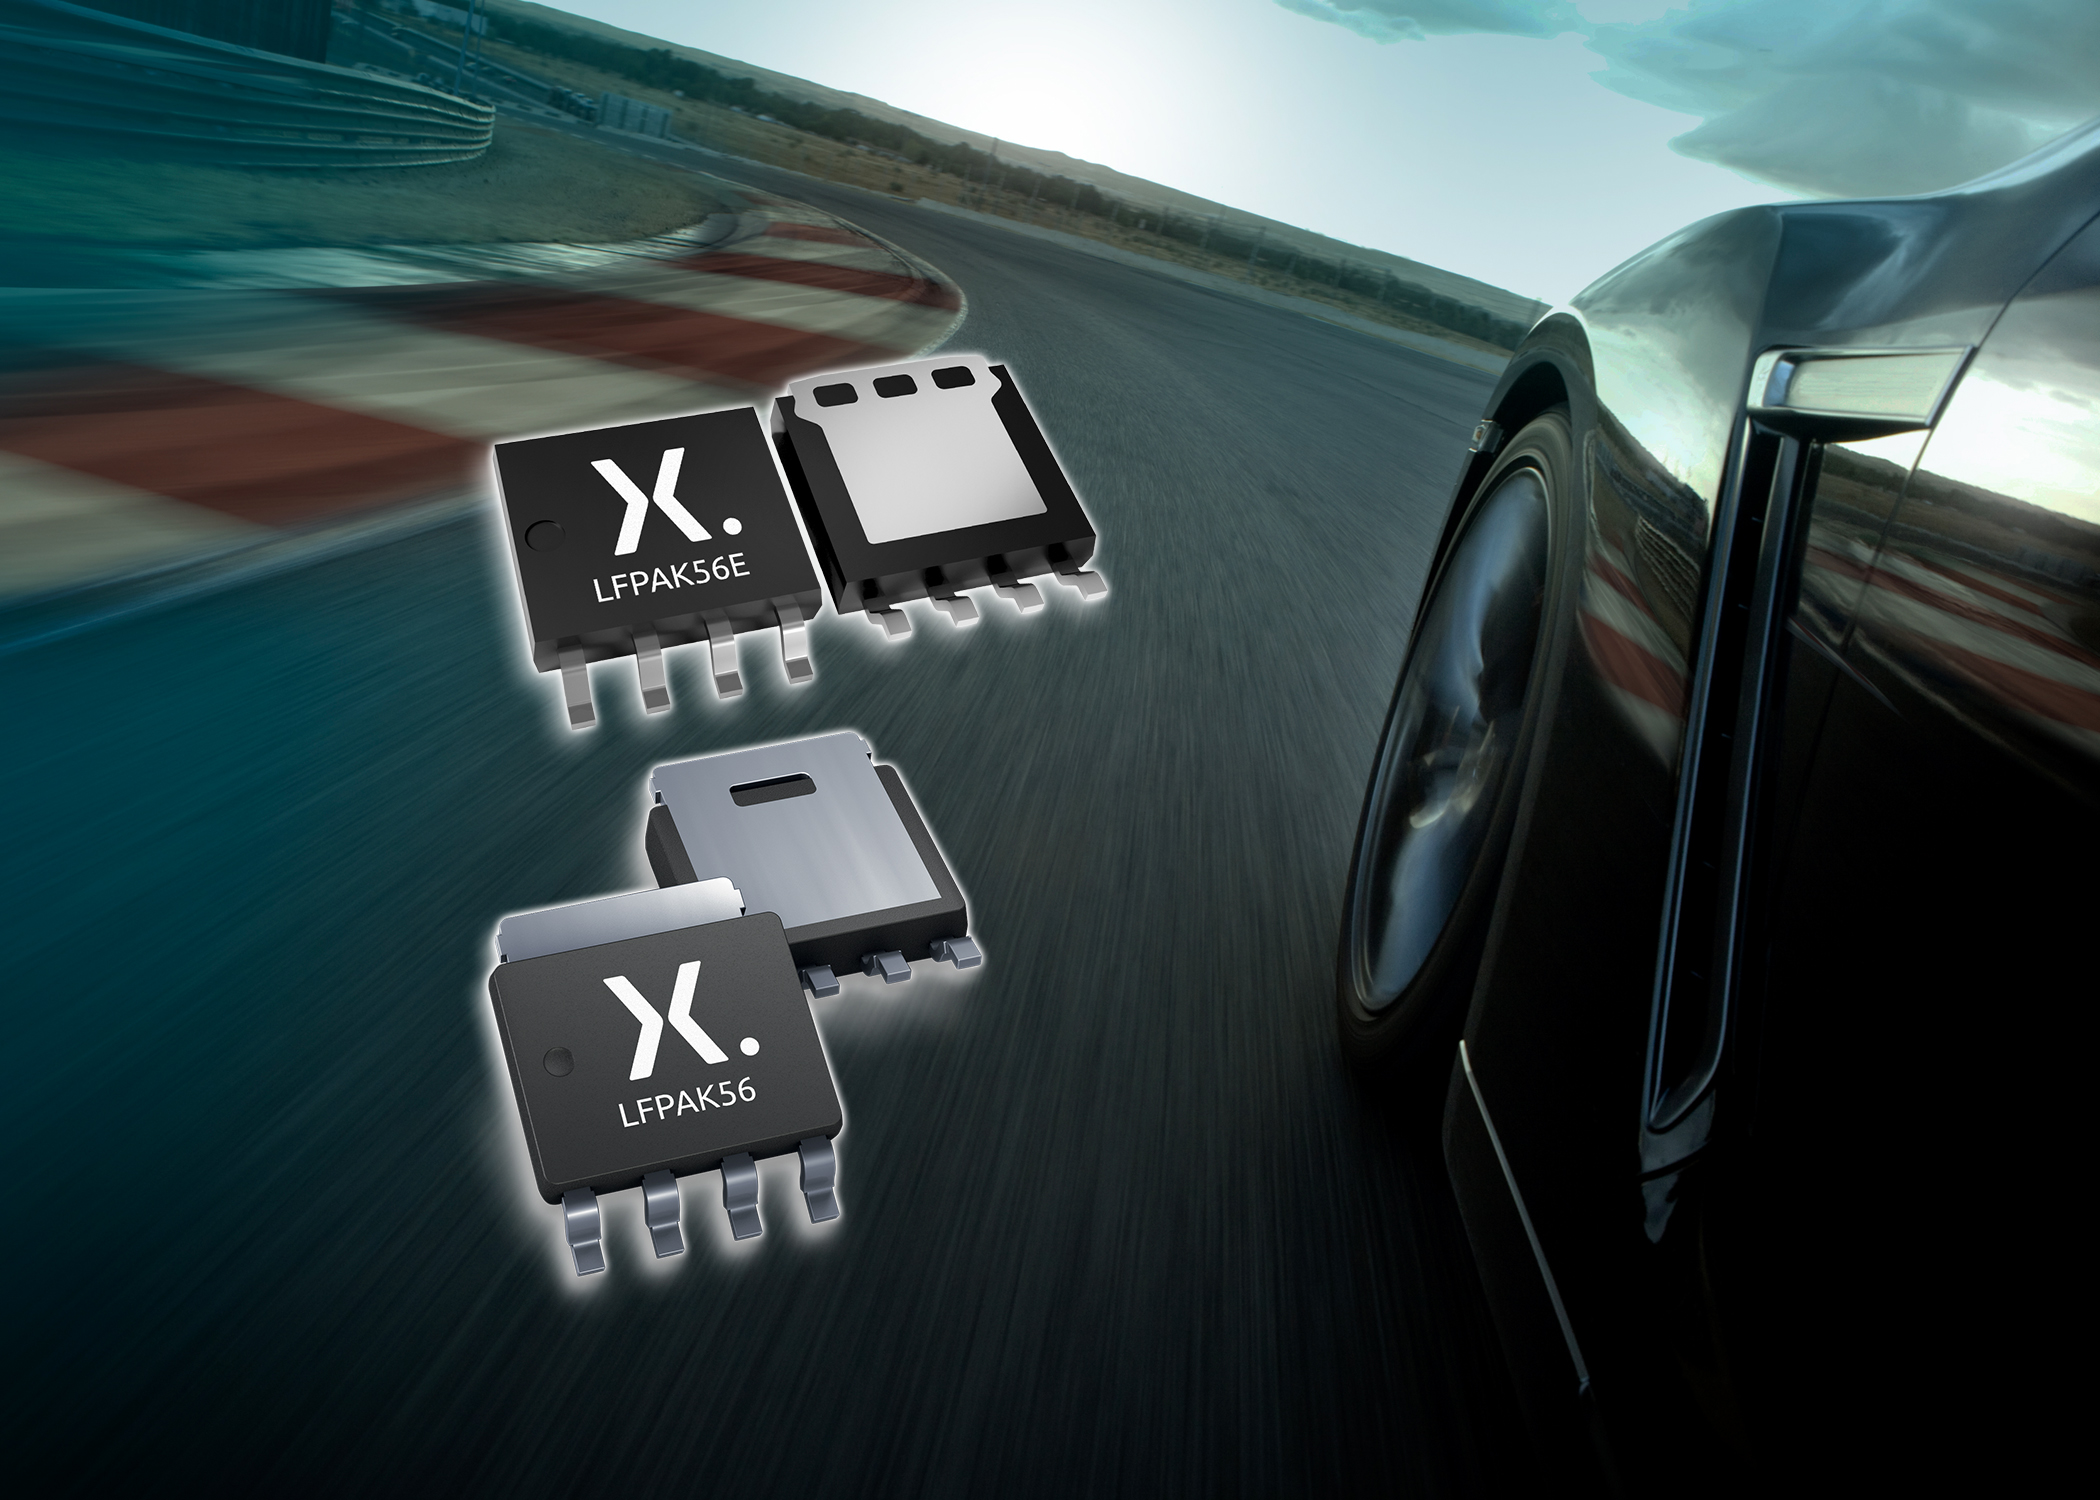 AEC-Q101 Trench 9 MOSFETs Save Space, Deliver High Performance, and Ruggedness